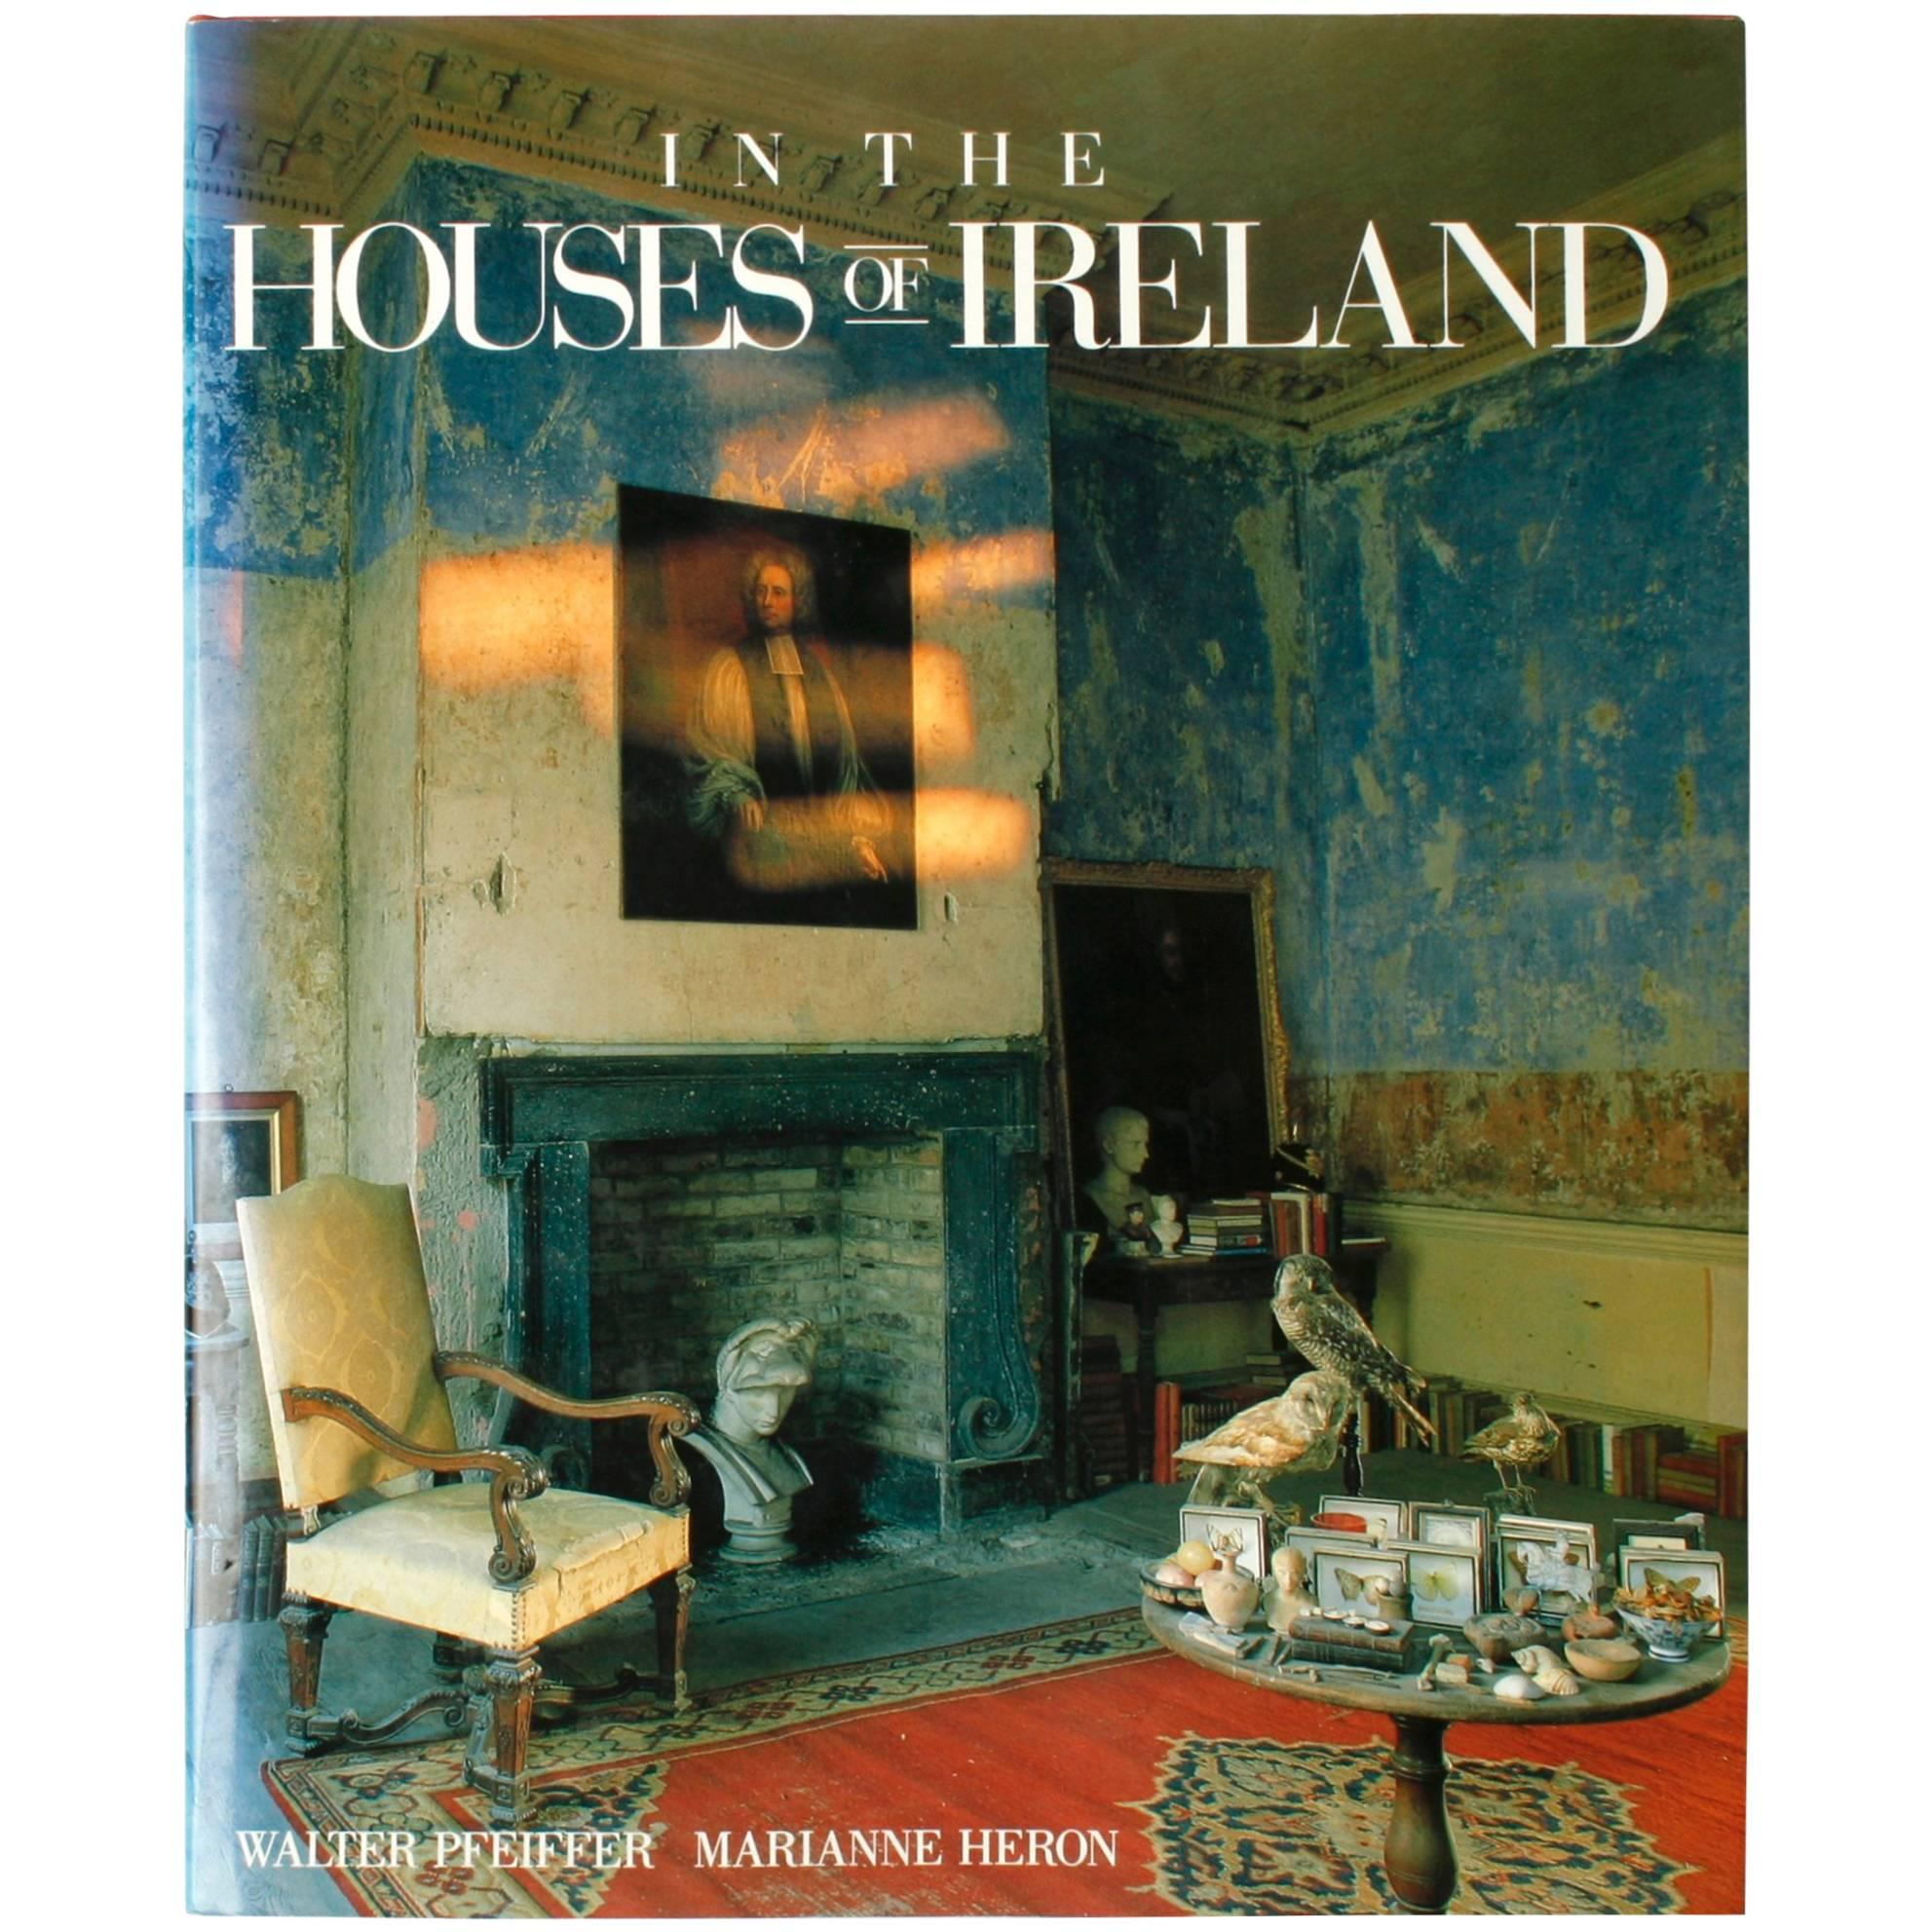 In The Houses of Ireland, First Edition